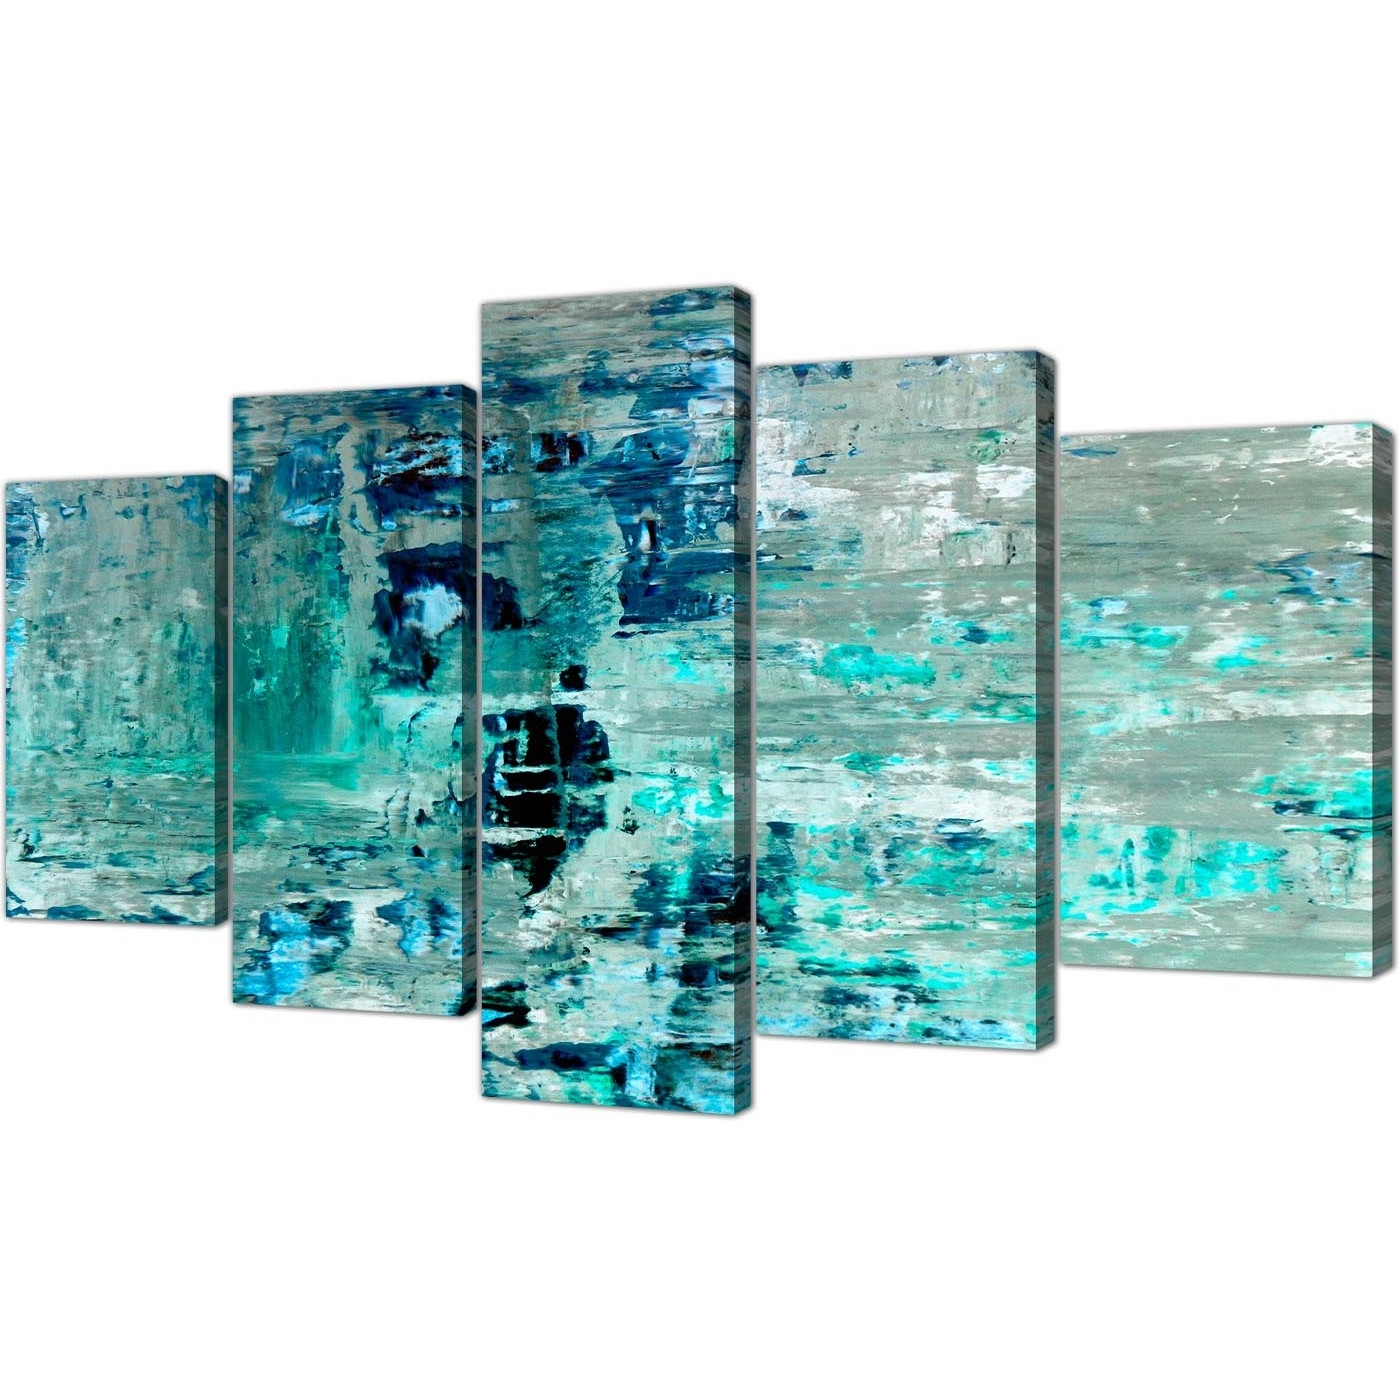 Well Known Extra Large Turquoise Teal Abstract Painting Wall Art Print Canvas Within Large Canvas Painting Wall Art (Gallery 19 of 20)